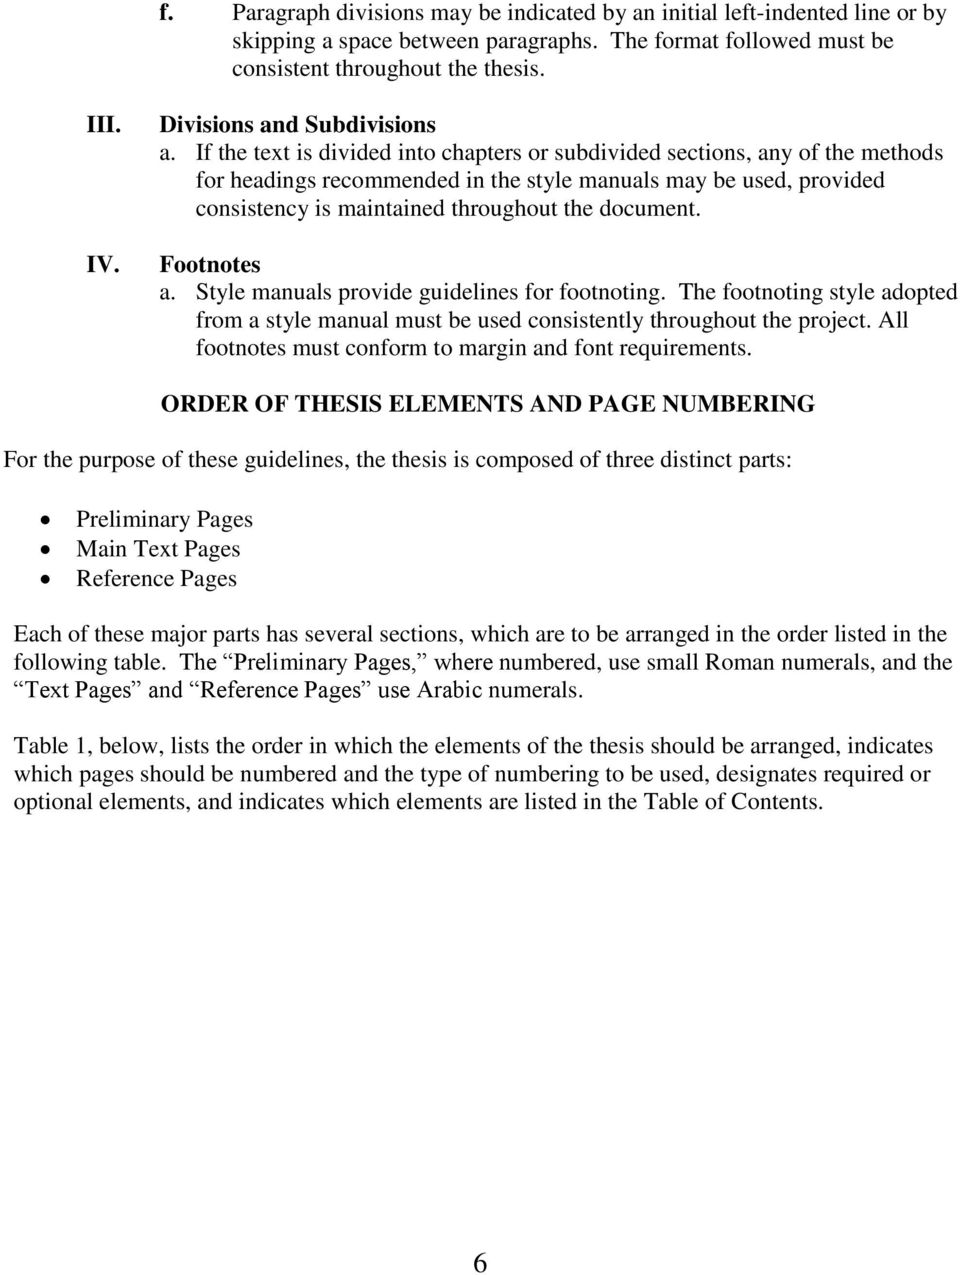 nmu thesis guidelines